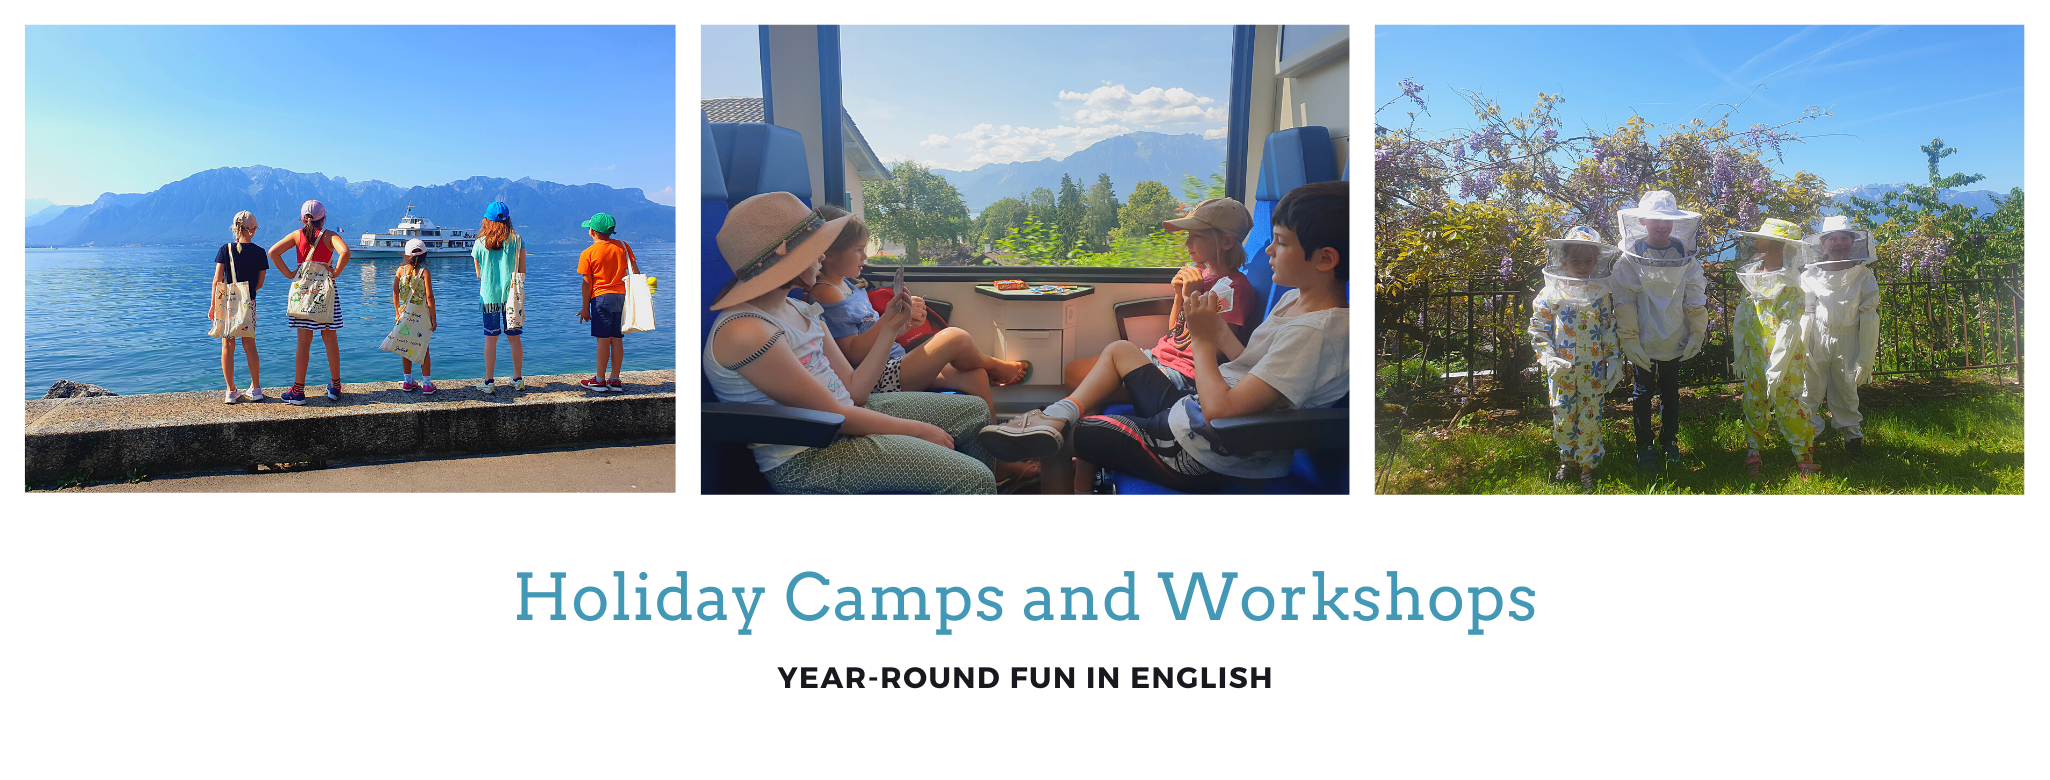 Holiday Camp stages vacances Blonay Vevey Montreux Lausanne